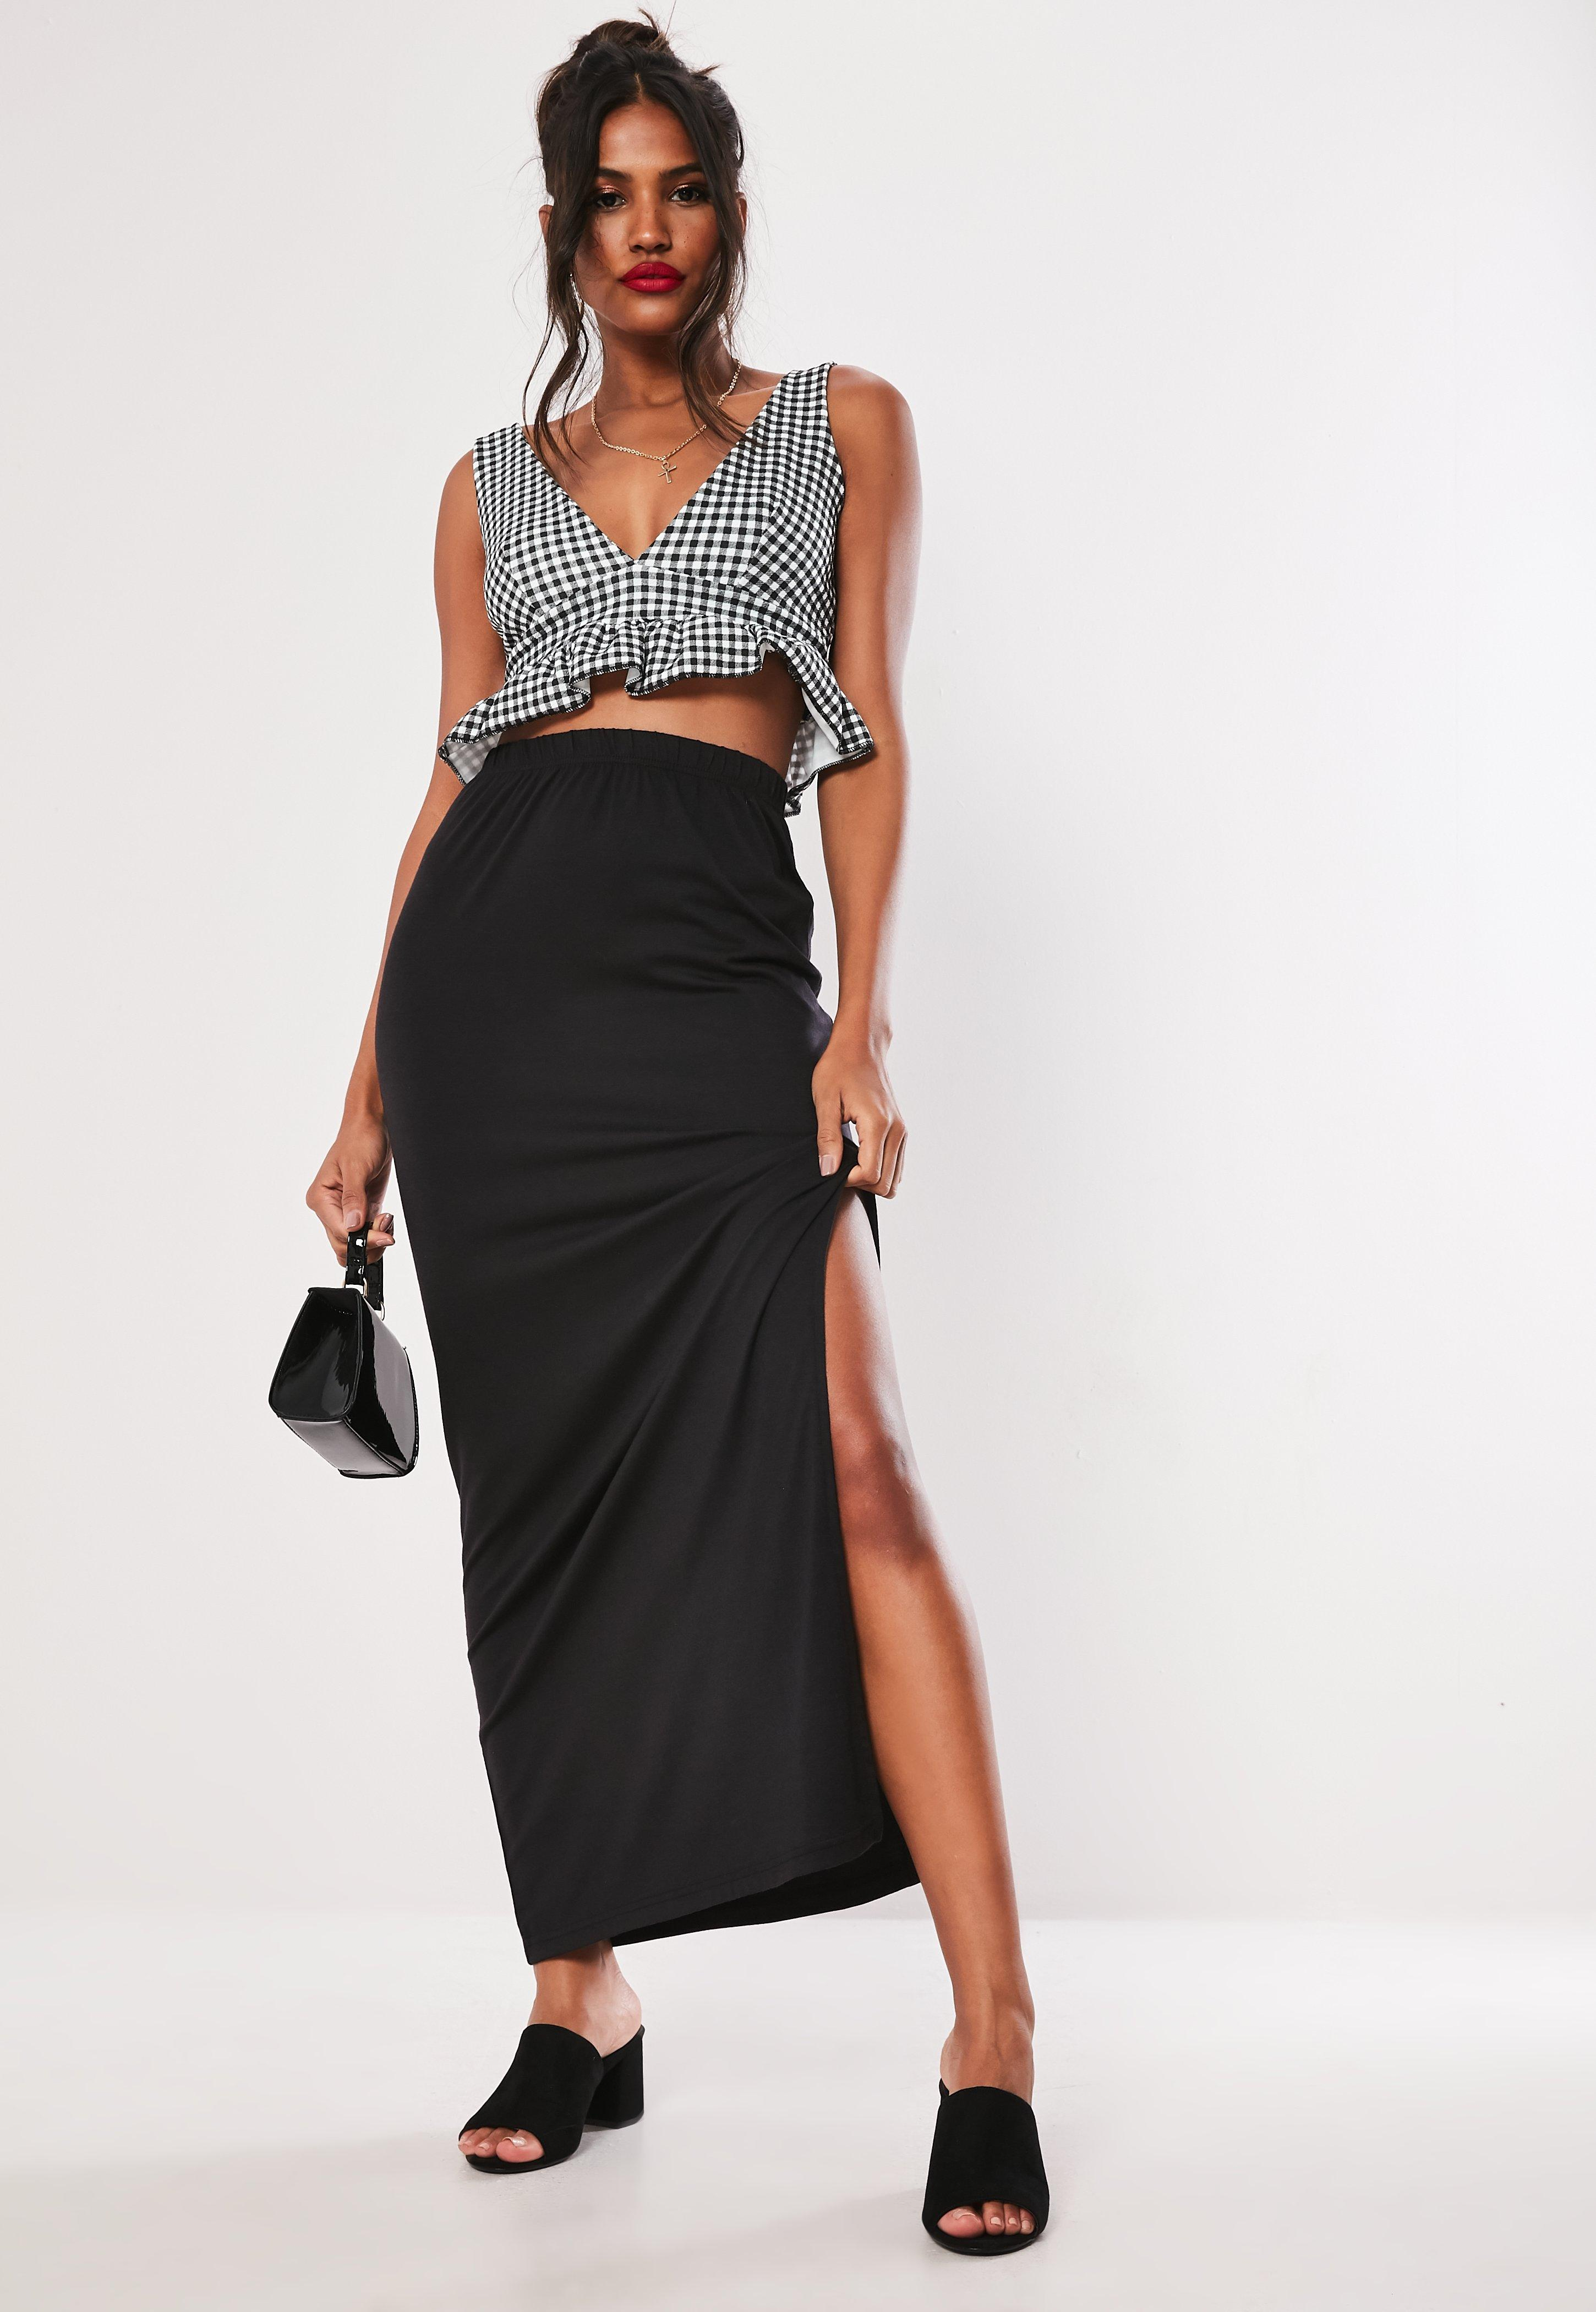 27b5ee48ef Skirts | Winter Skirts for Women Online UK - Missguided